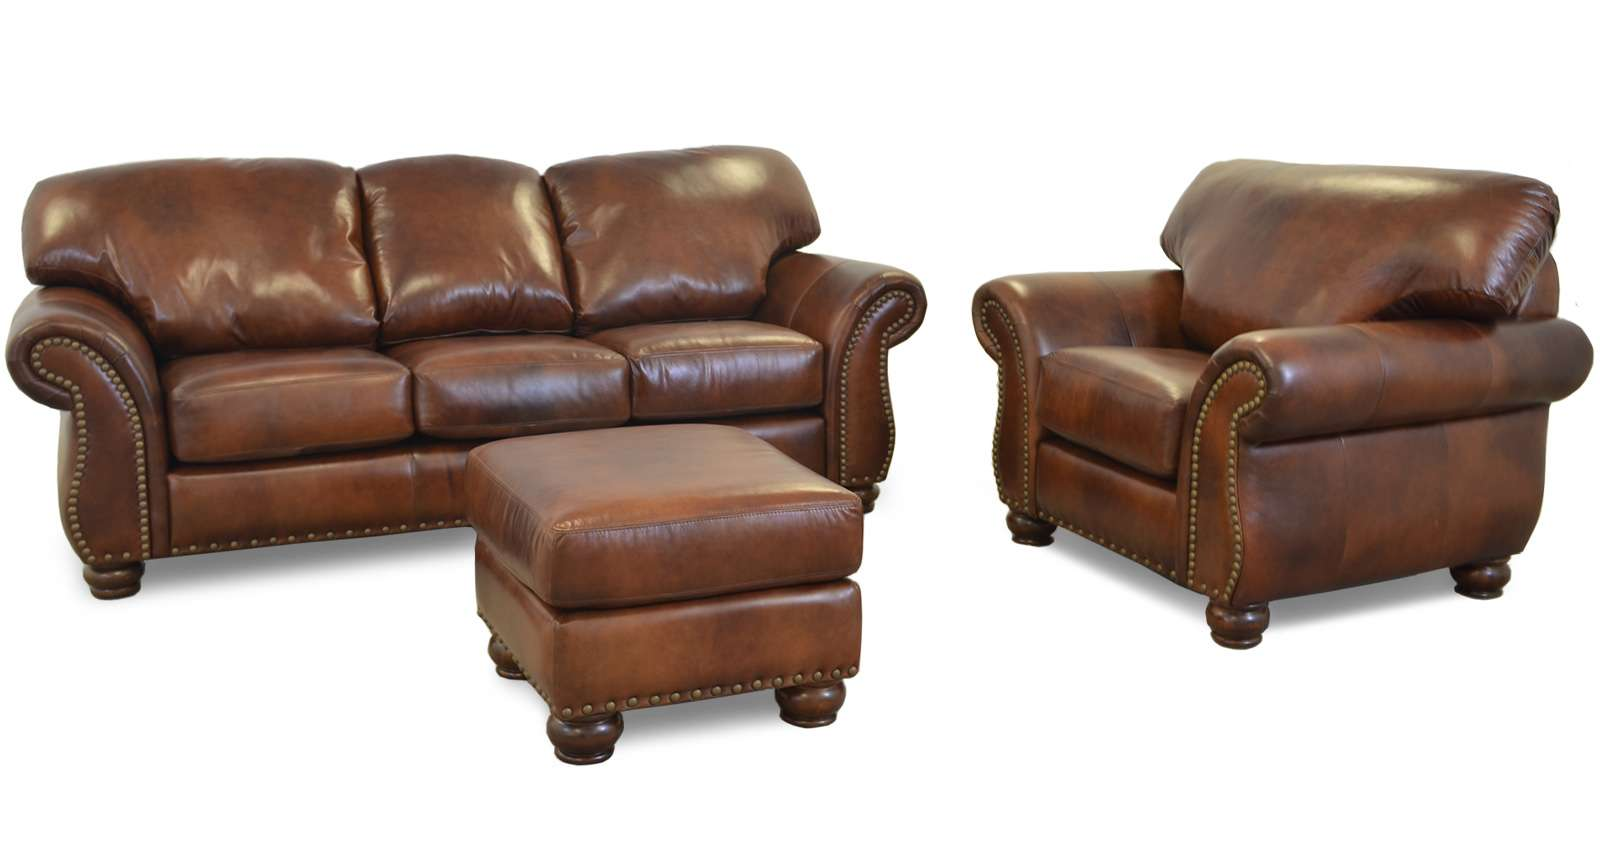 Vintage Leather Furniture Manufacturing Matilda leather sofa photo. Leather furniture manufacturer in the USA